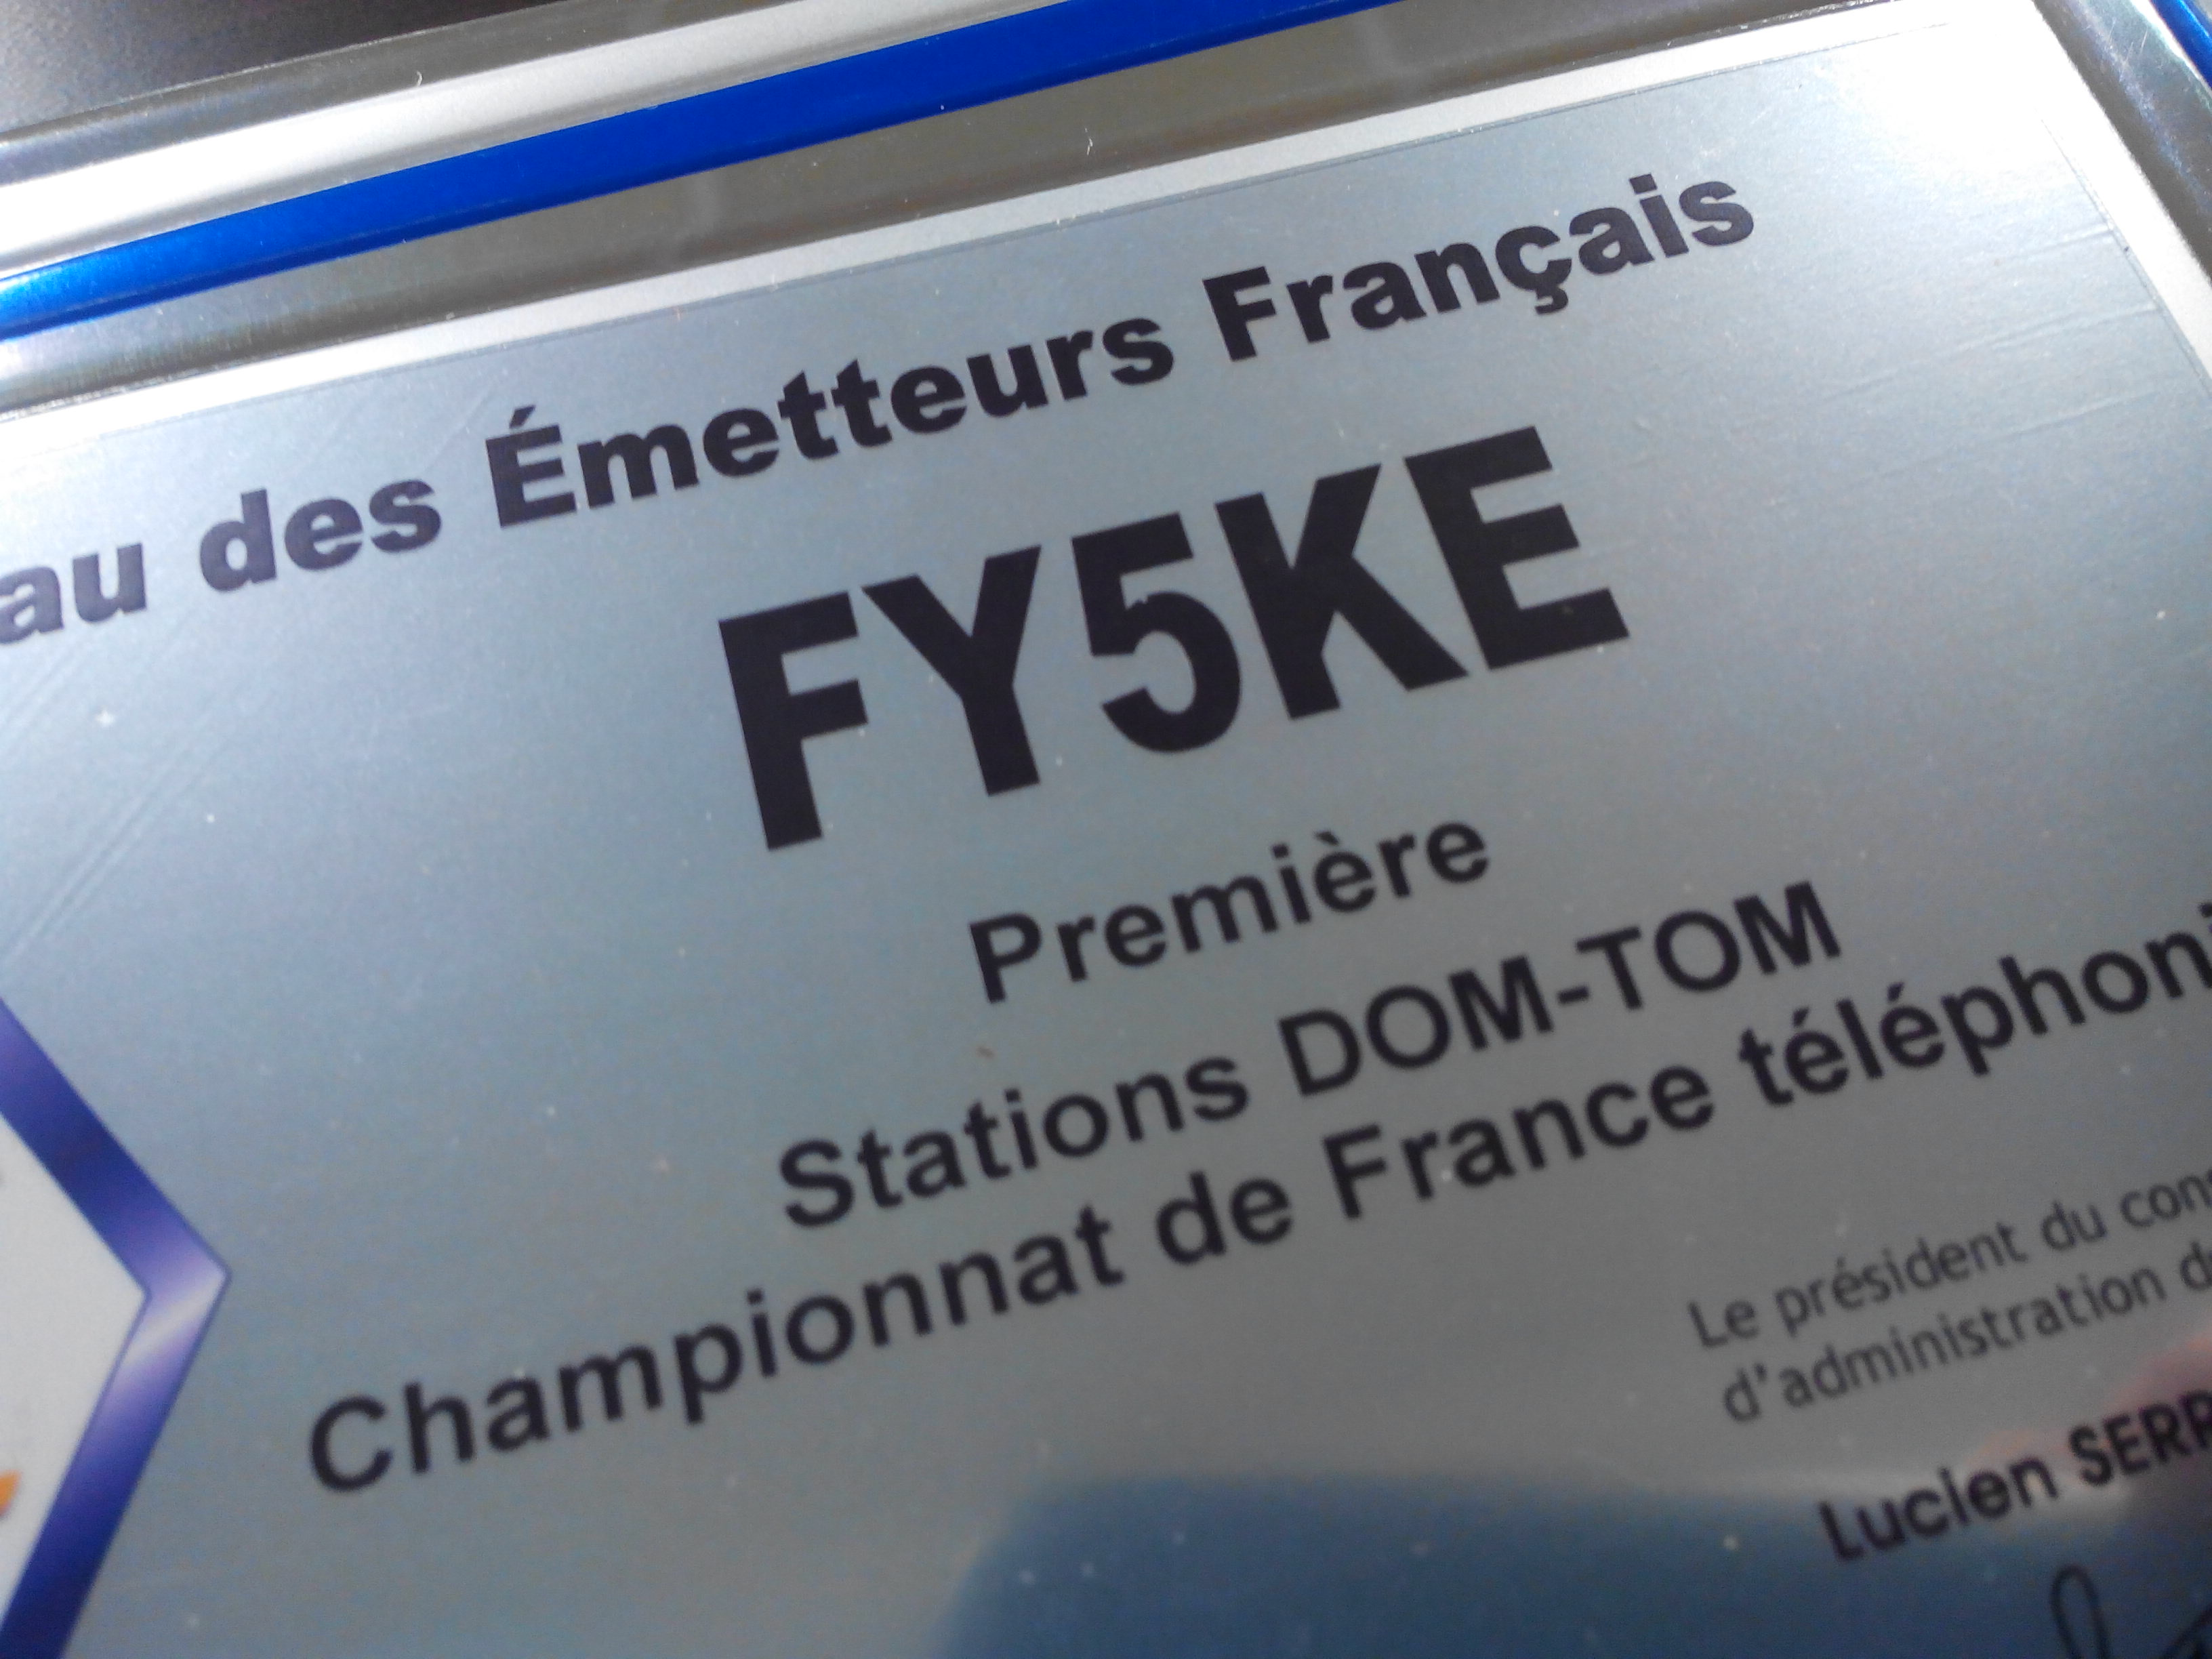 Champion de France DOM TOM FY5KE 2014